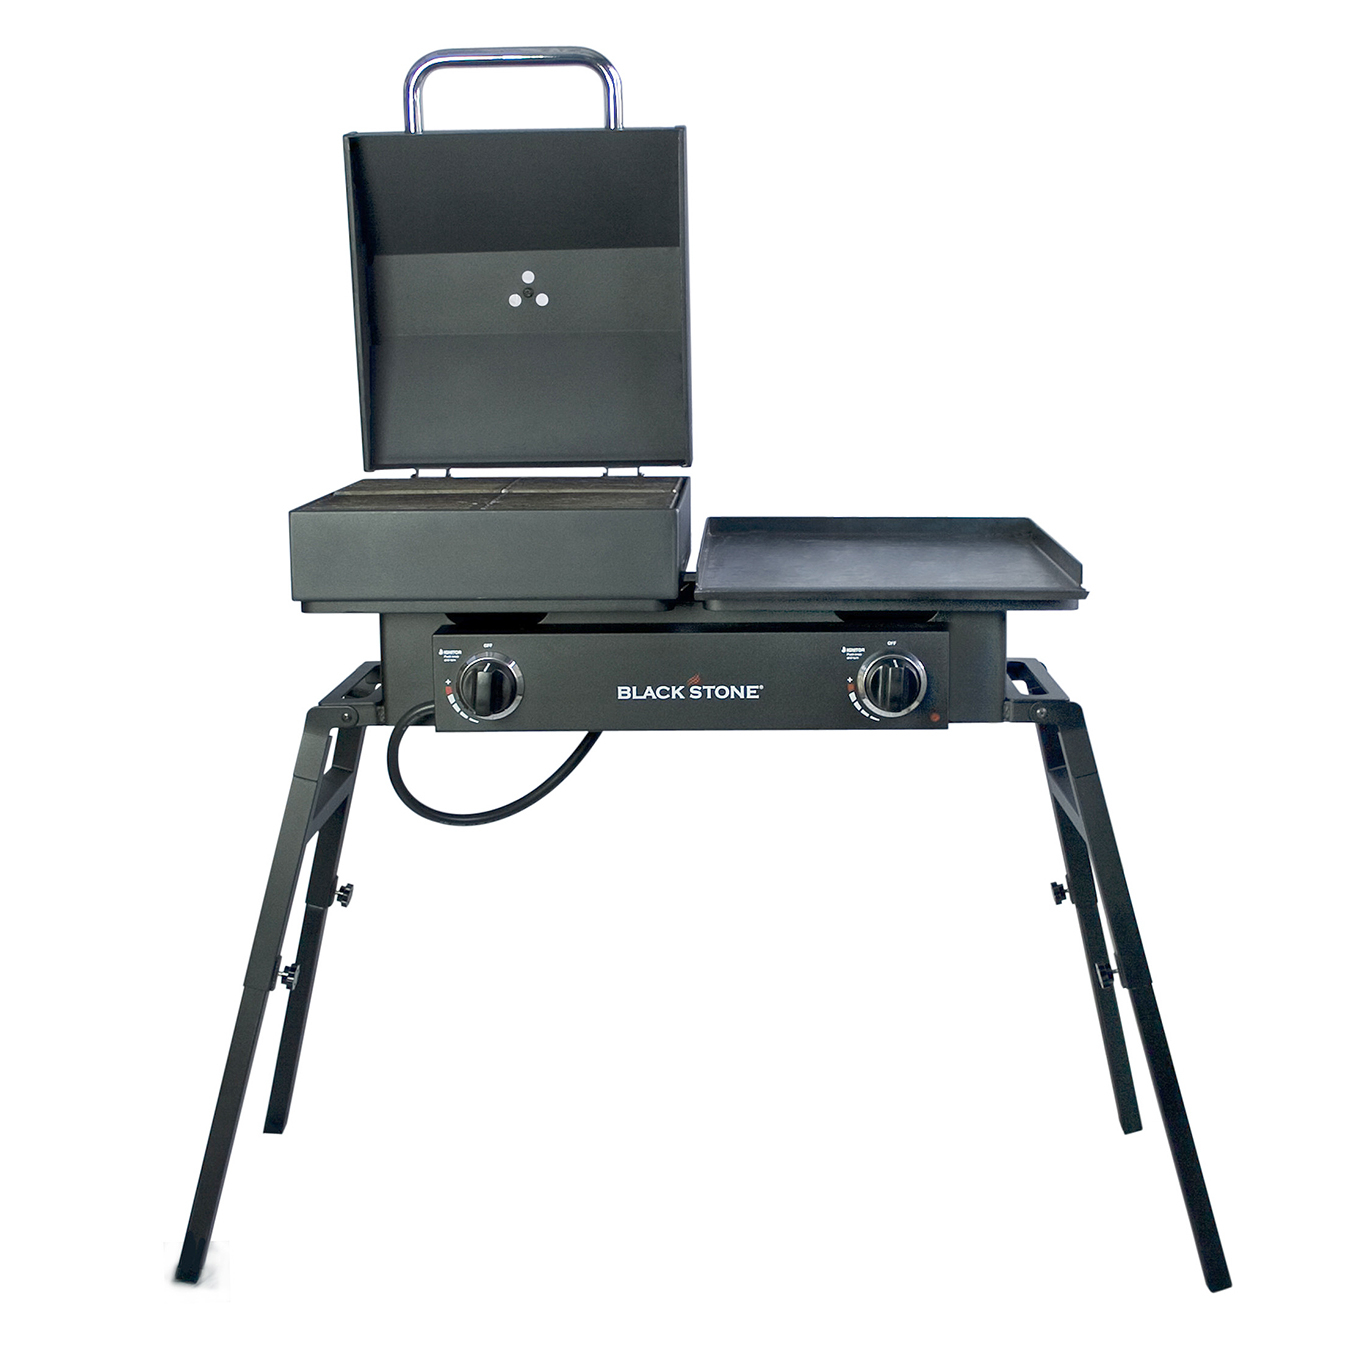 Blackstone Tailgater Combo Grill and Griddle